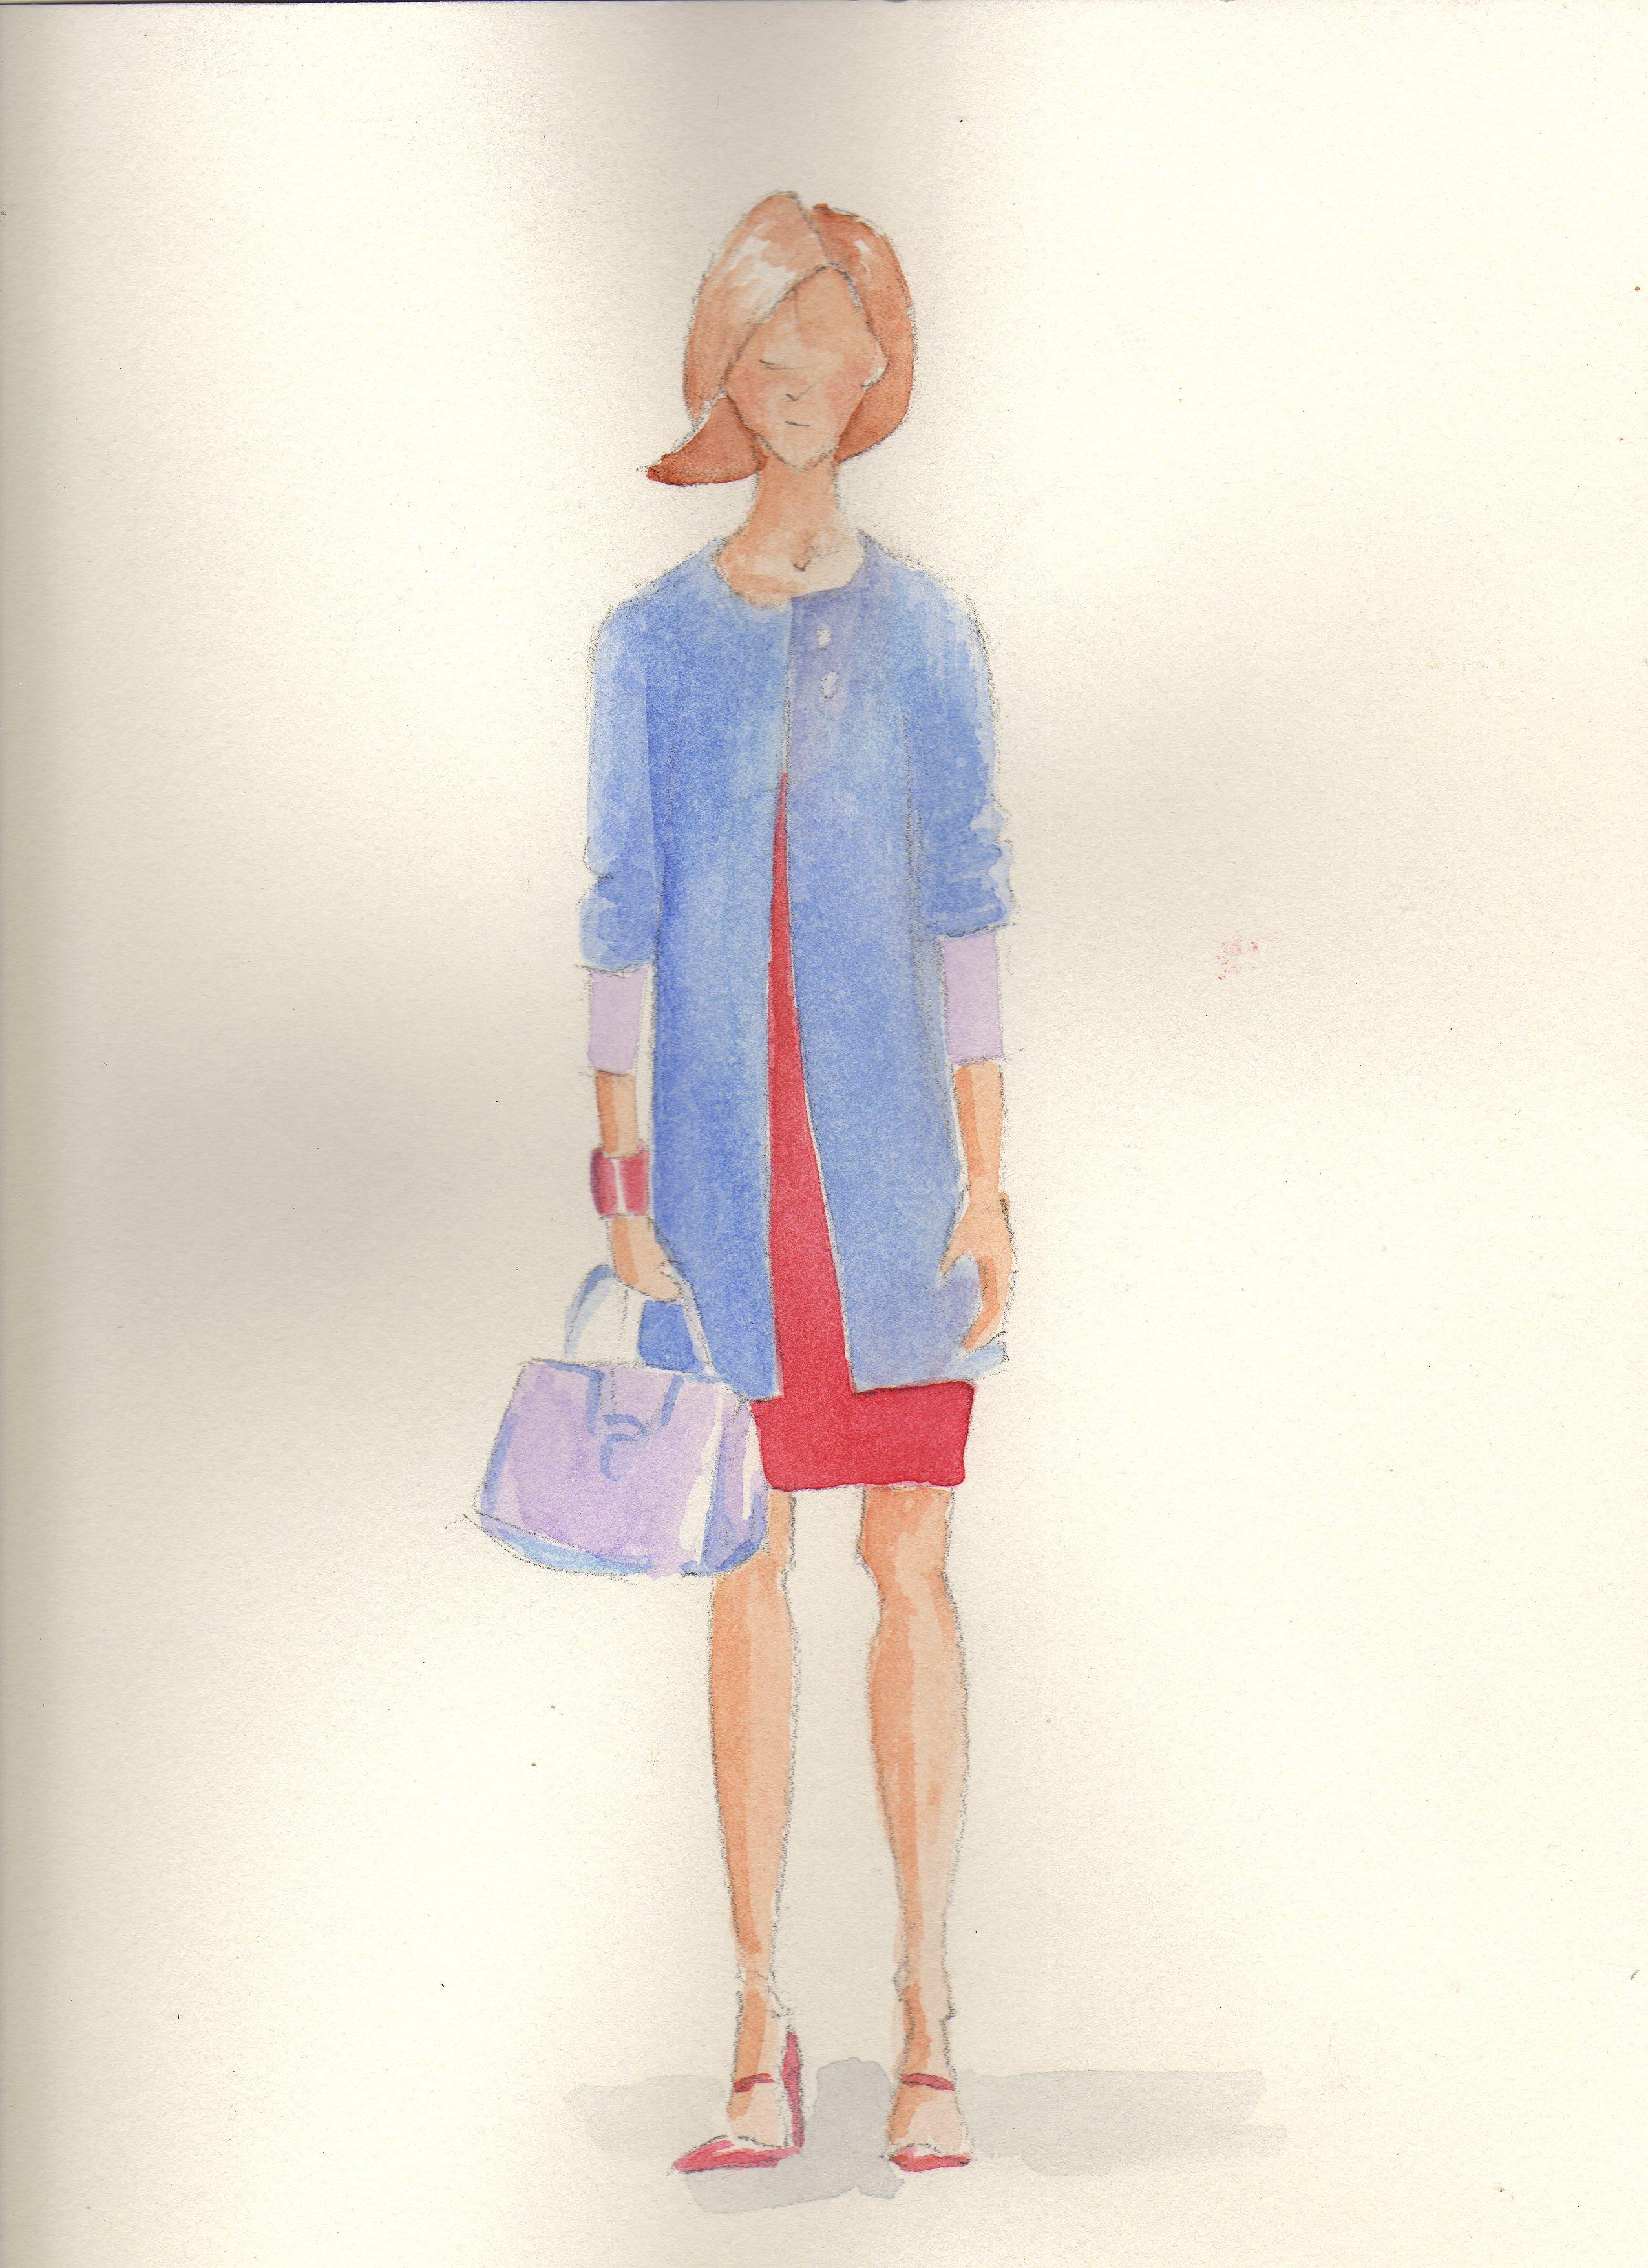 Fun with Watercolor Fashion Mashup - image 4 - student project